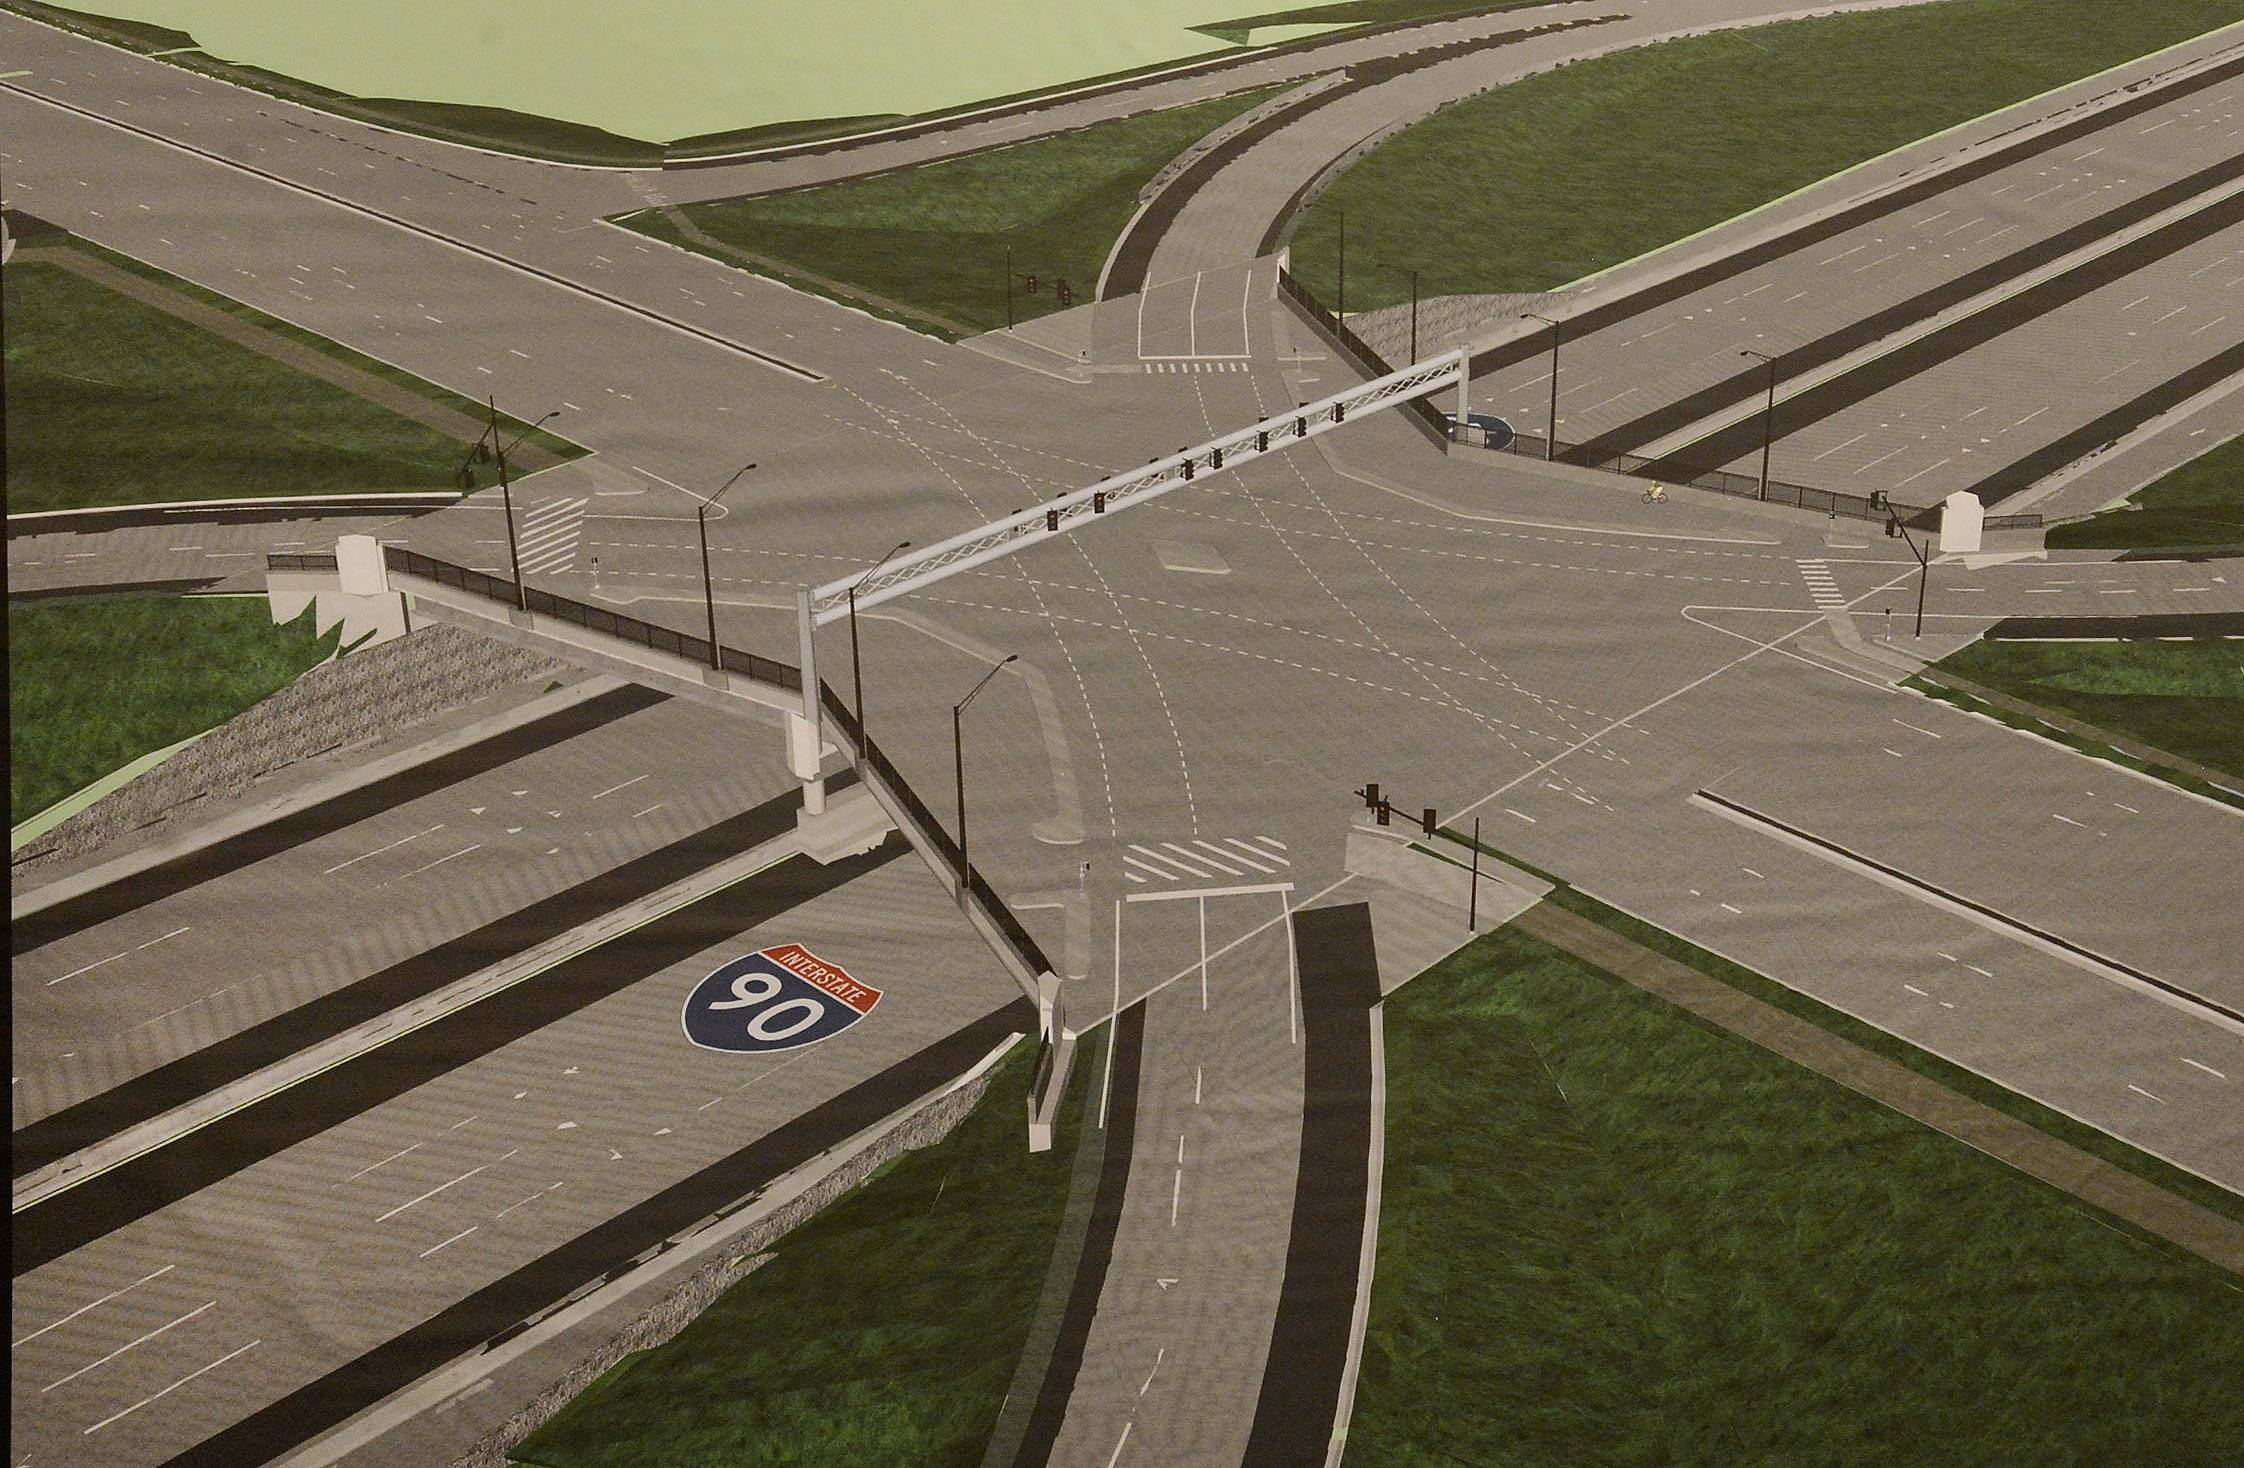 Motorists will have access to a full interchange at the intersection of I-90 and Barrington Road starting Thursday, Aug. 31, when the eastbound exit ramp opens. This rendering of the improvement was released when the project was announced in February 2014.